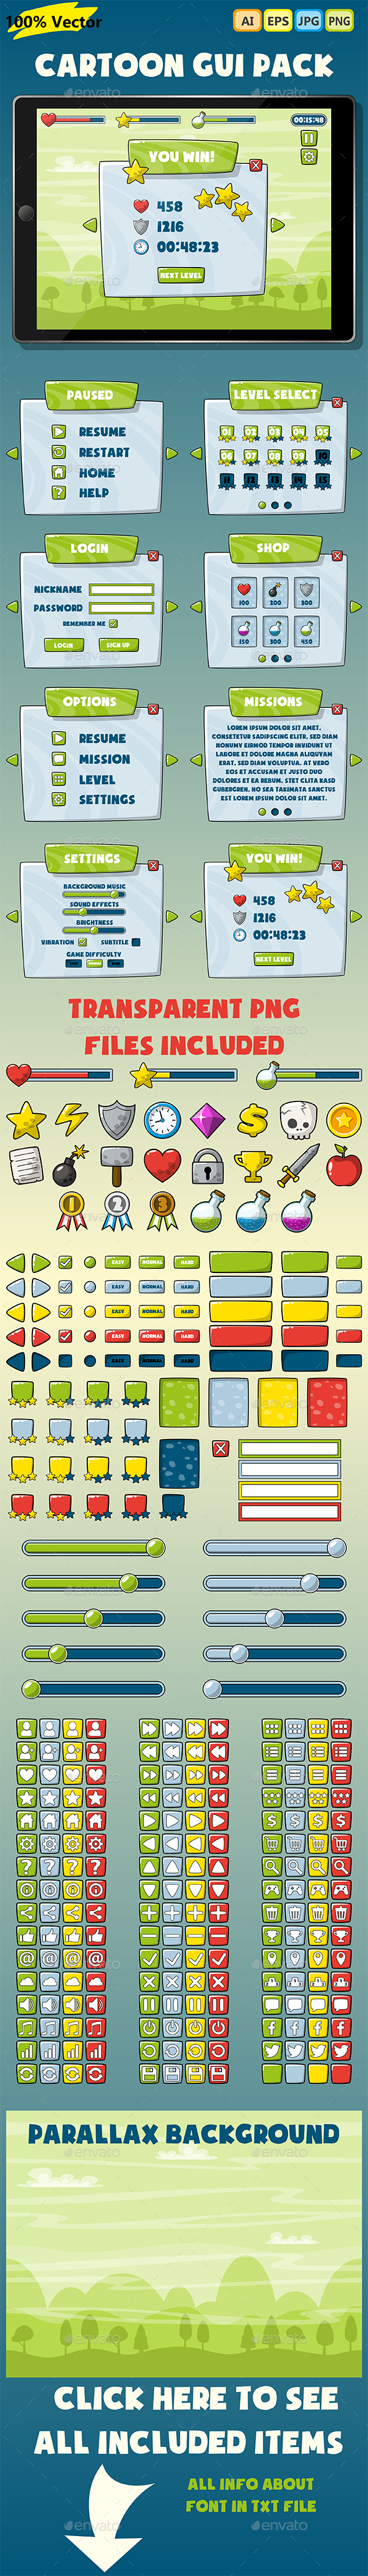 Cartoon GUI PACK #02 - User Interfaces Game Assets